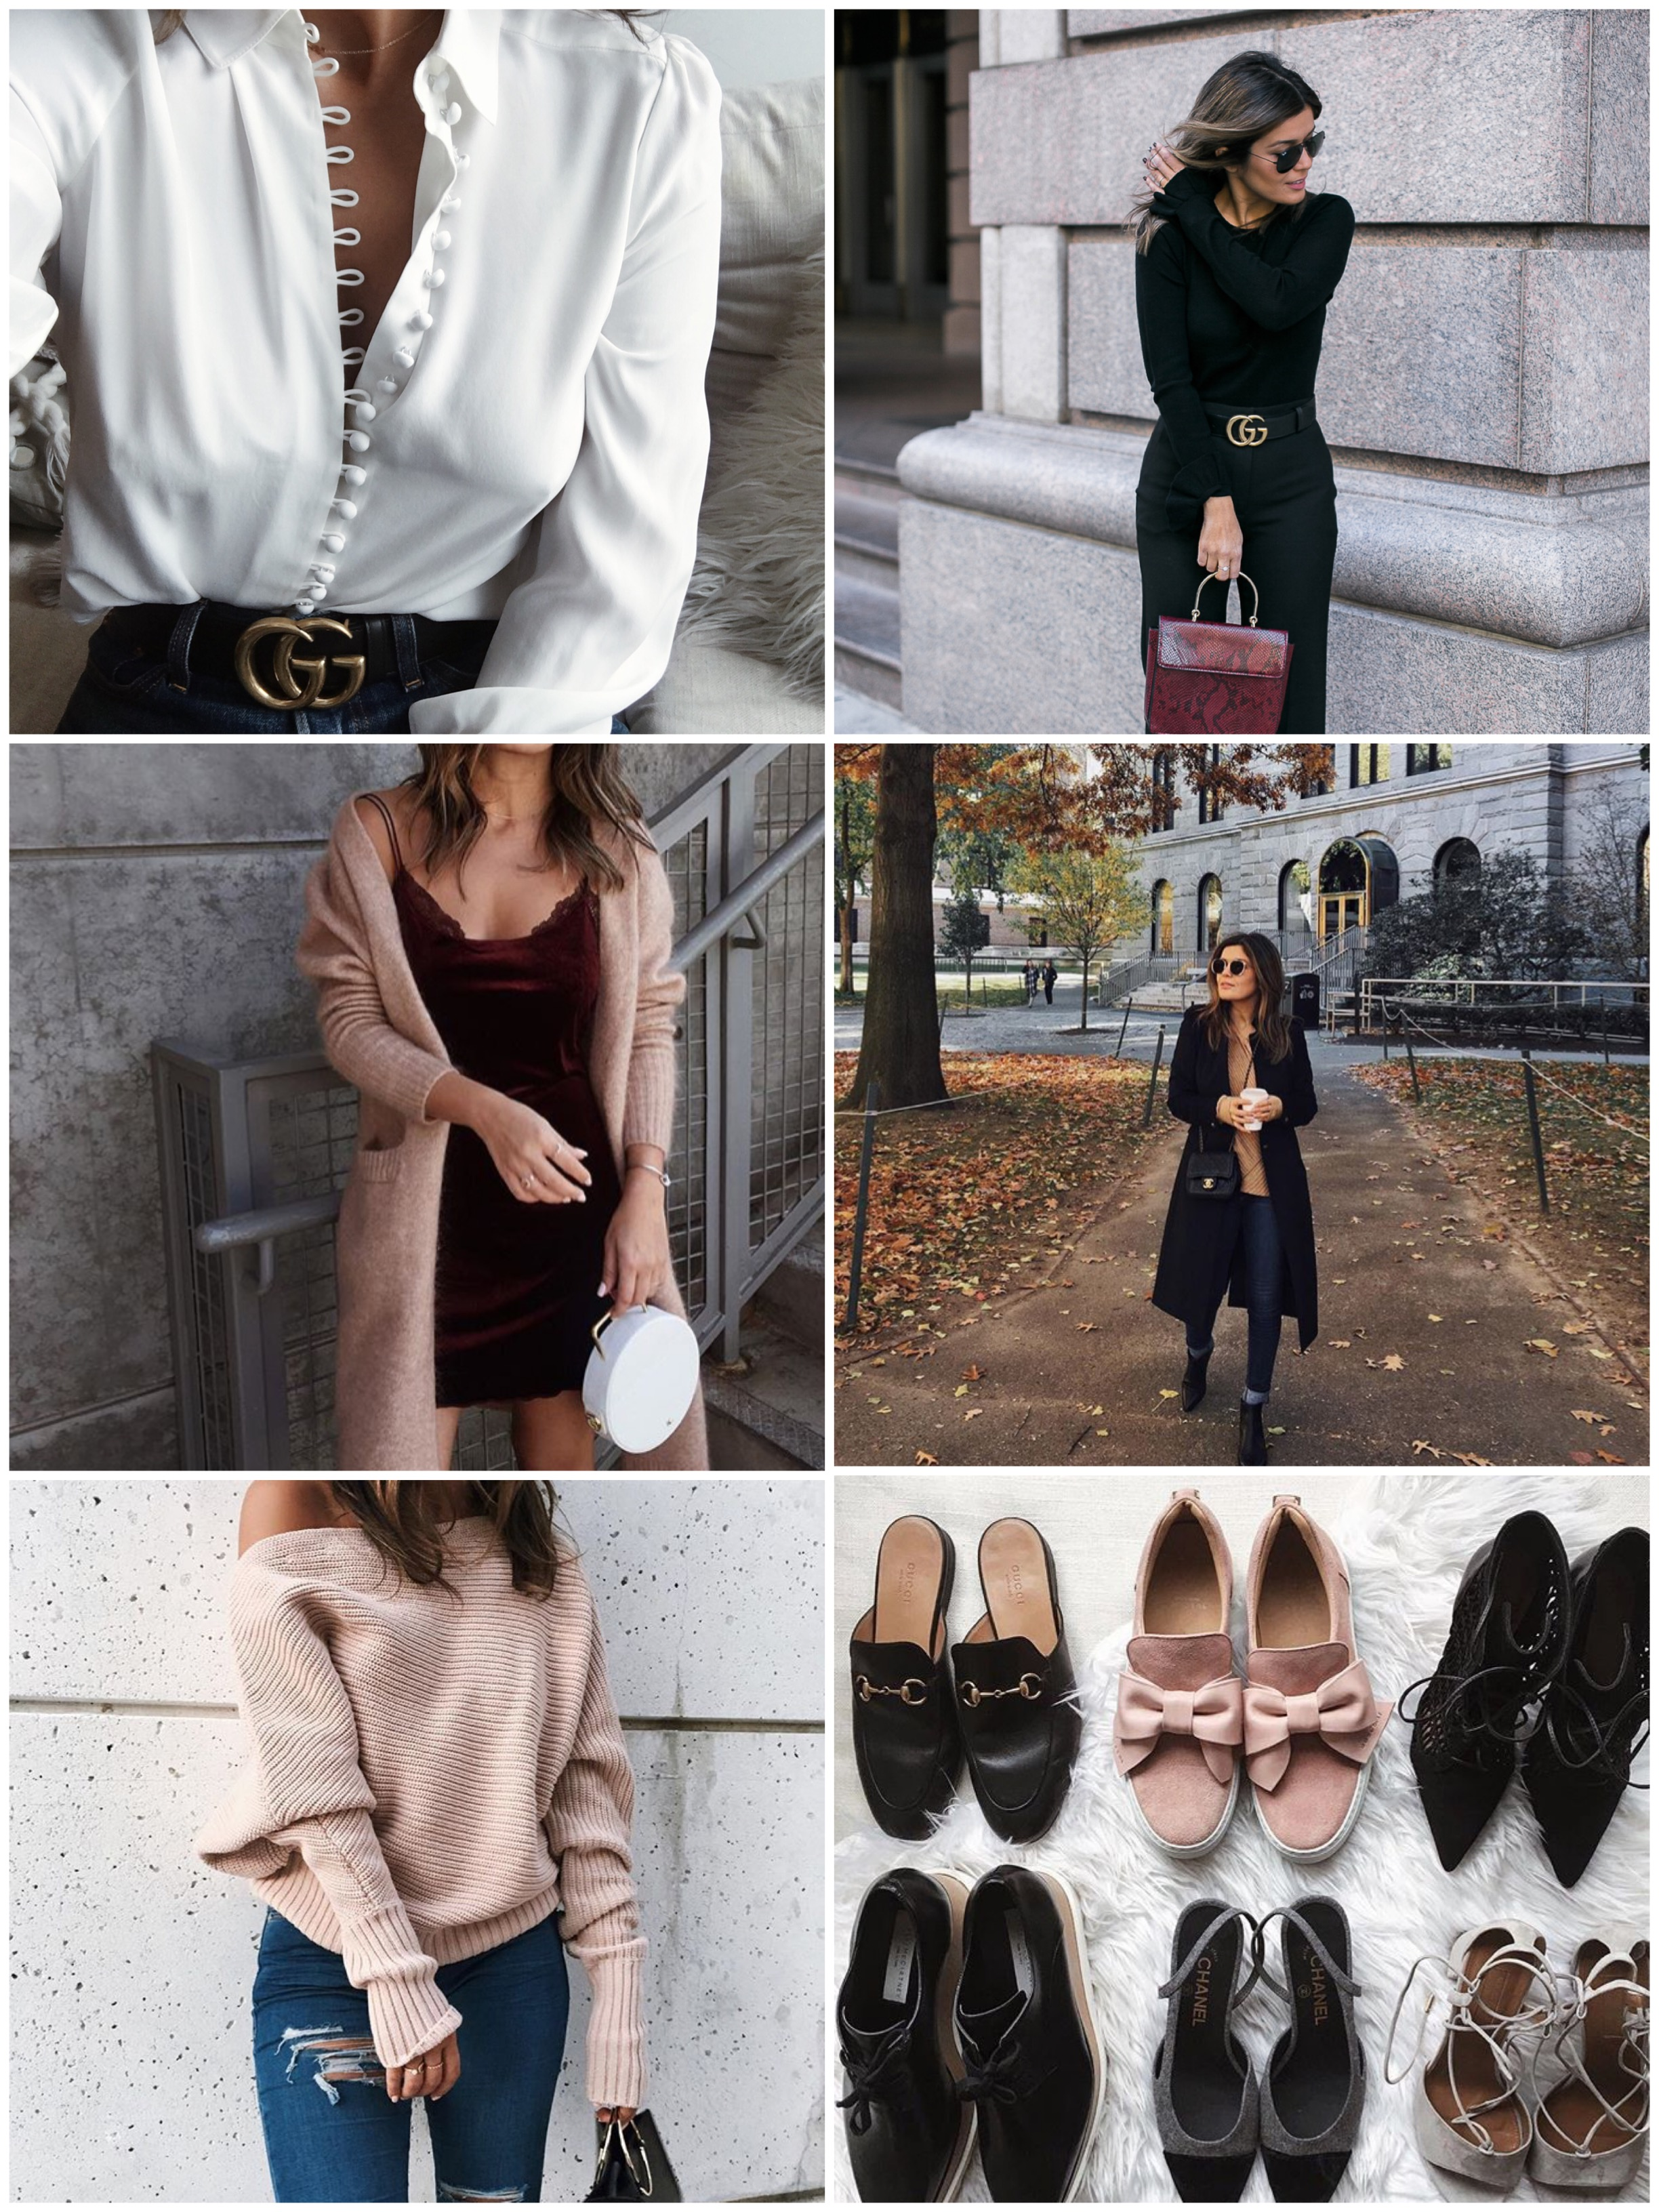 Top 6 Instagrams @styleMBA